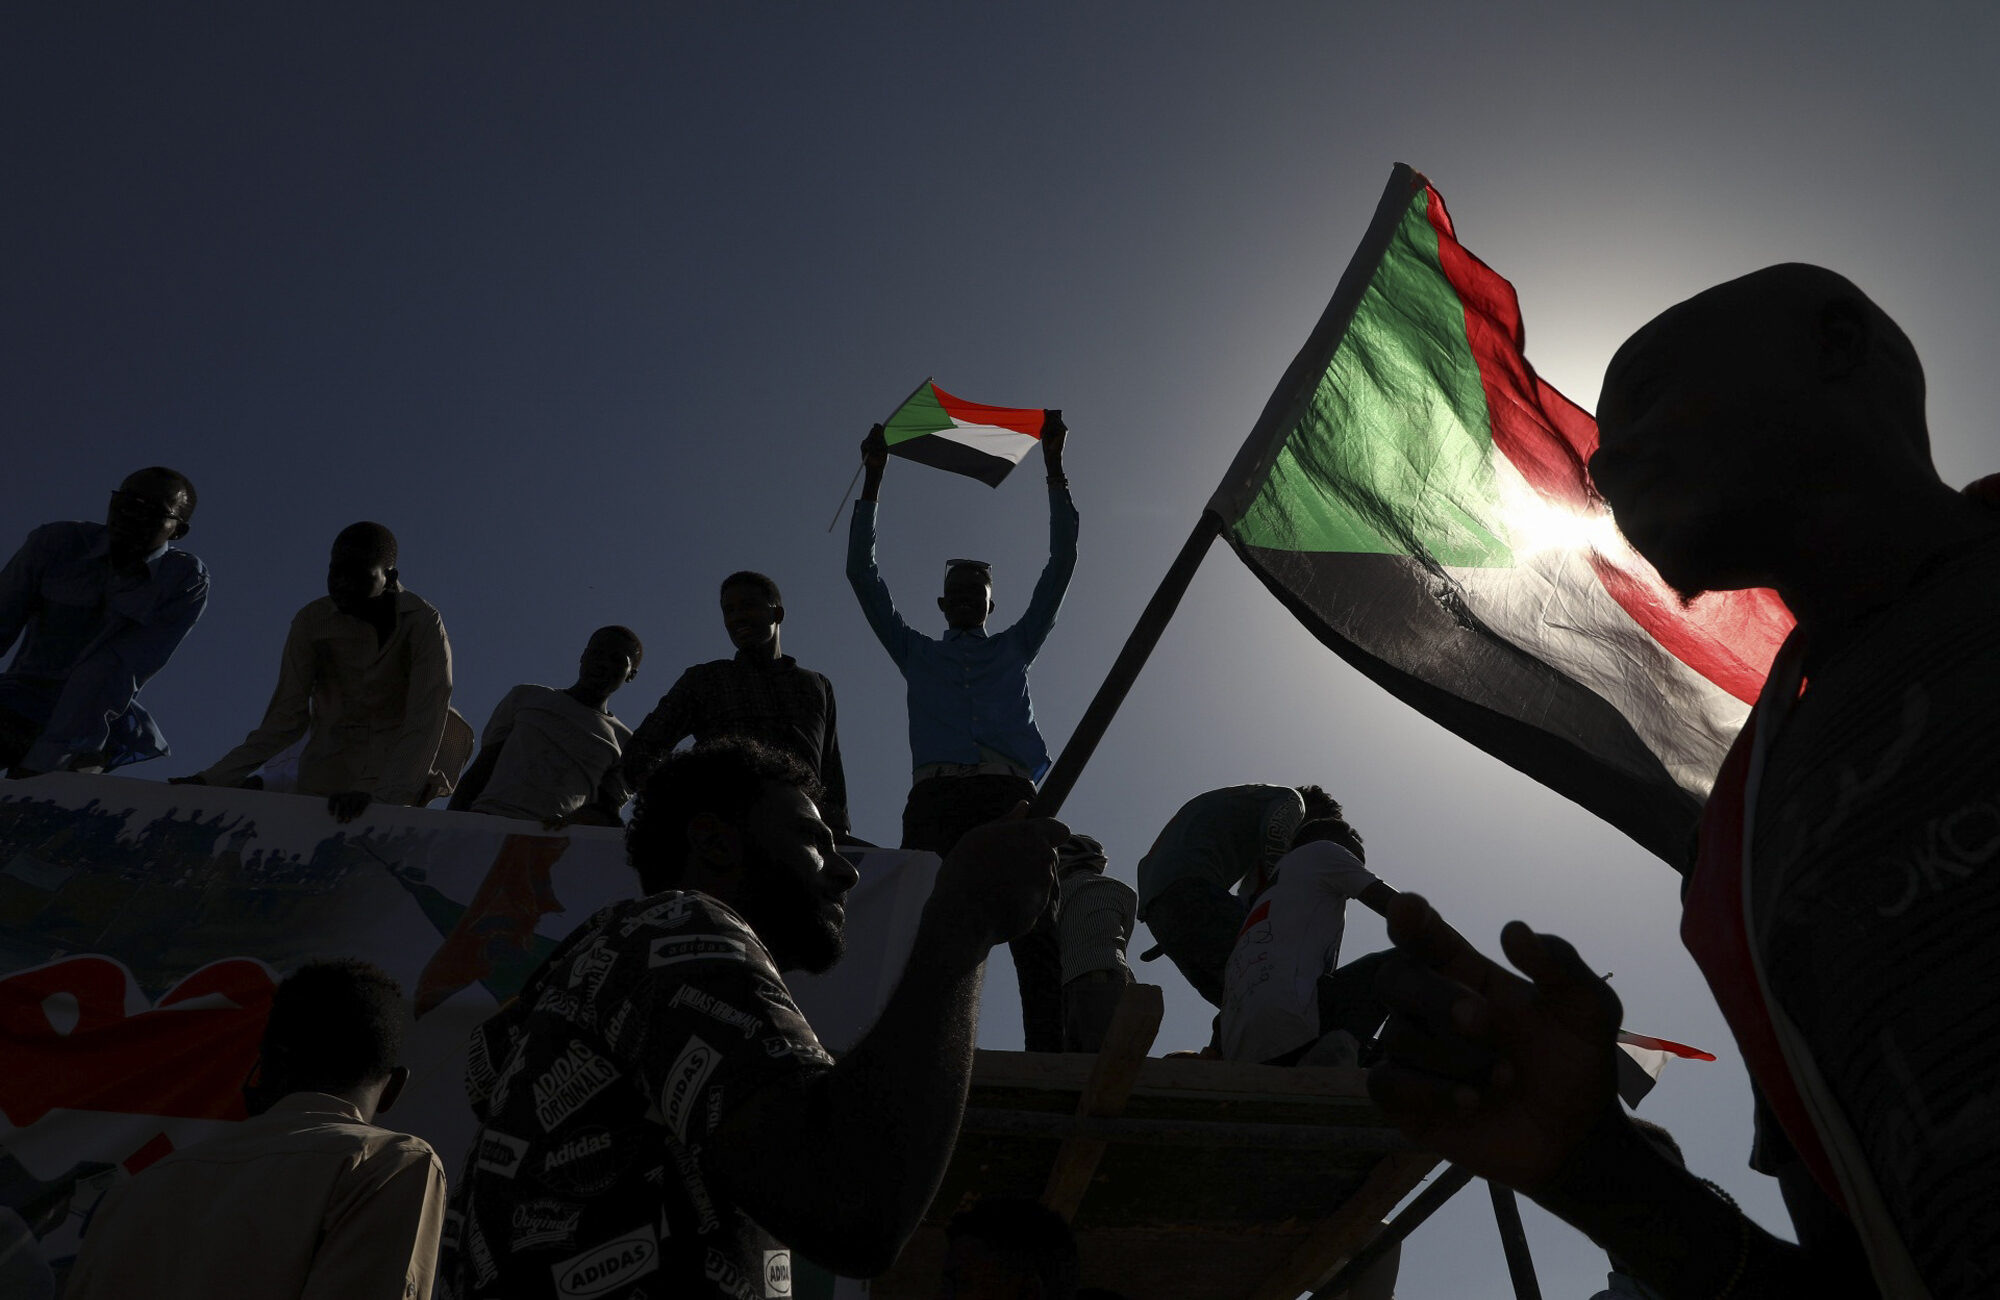 Sudanese men holding flags. [AP Image]